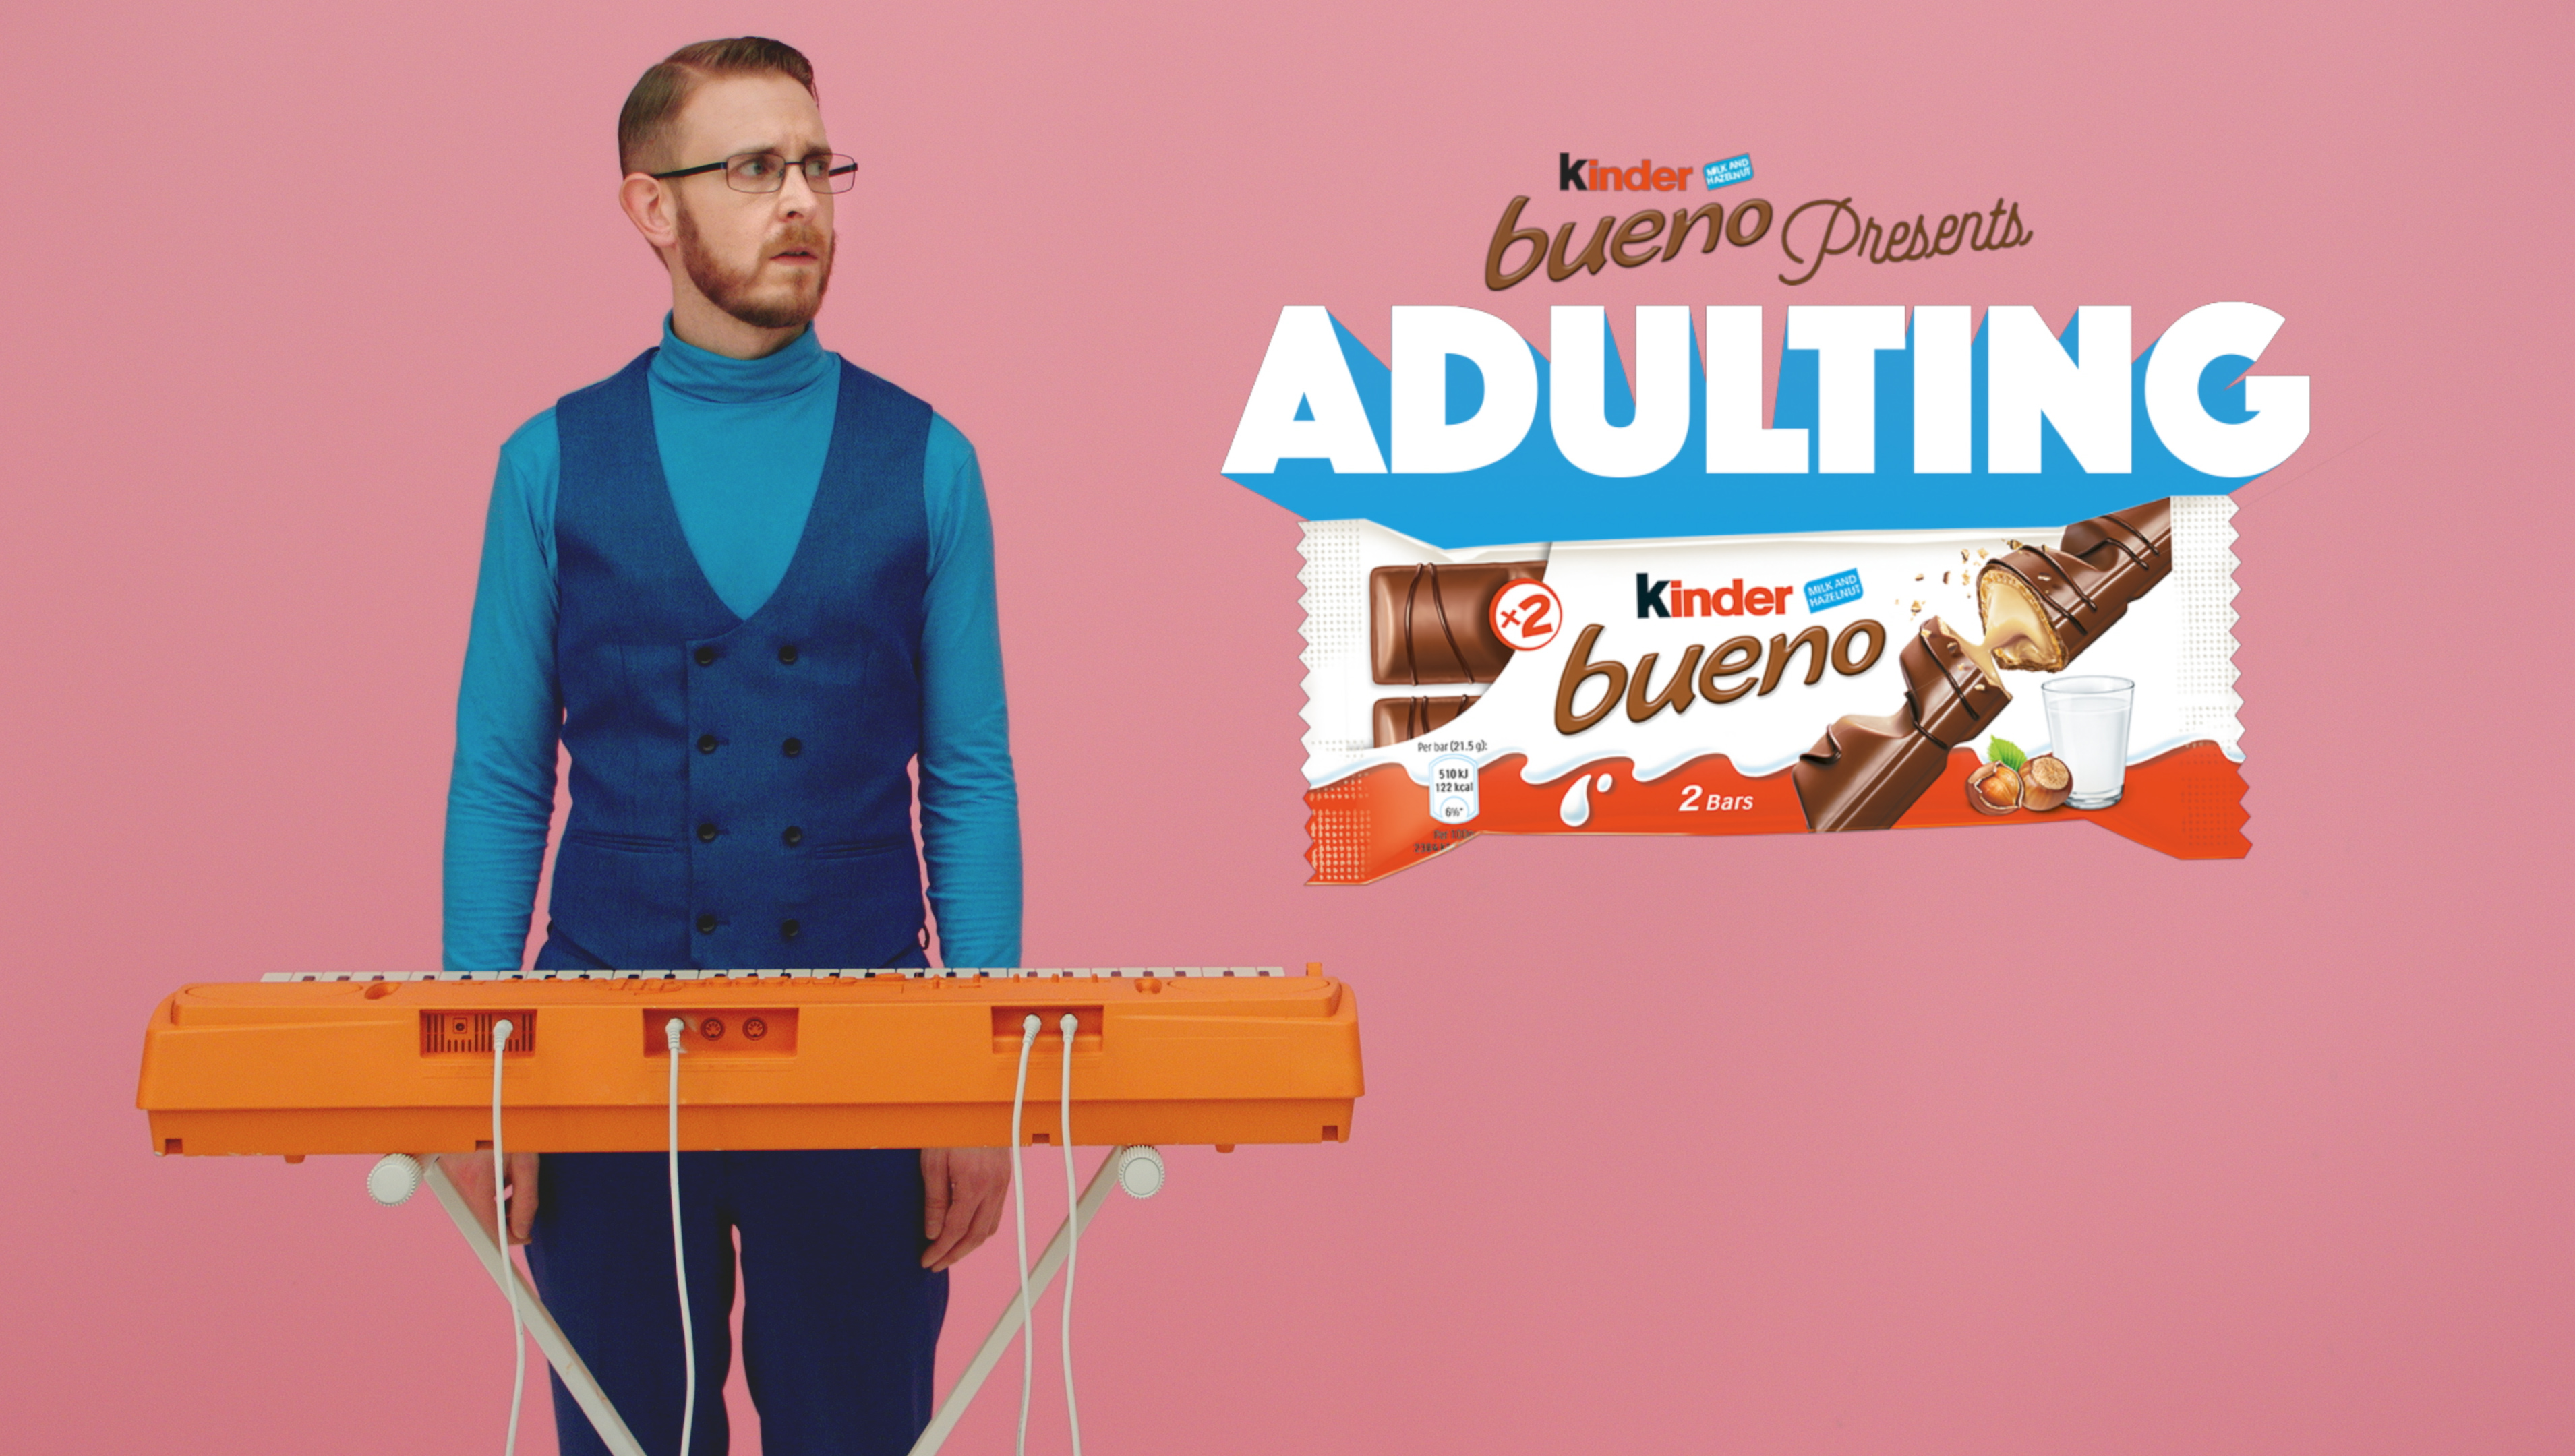 29af7c2ea767c9 Kinder Bueno to launch 'Now That's Adulting' campaign